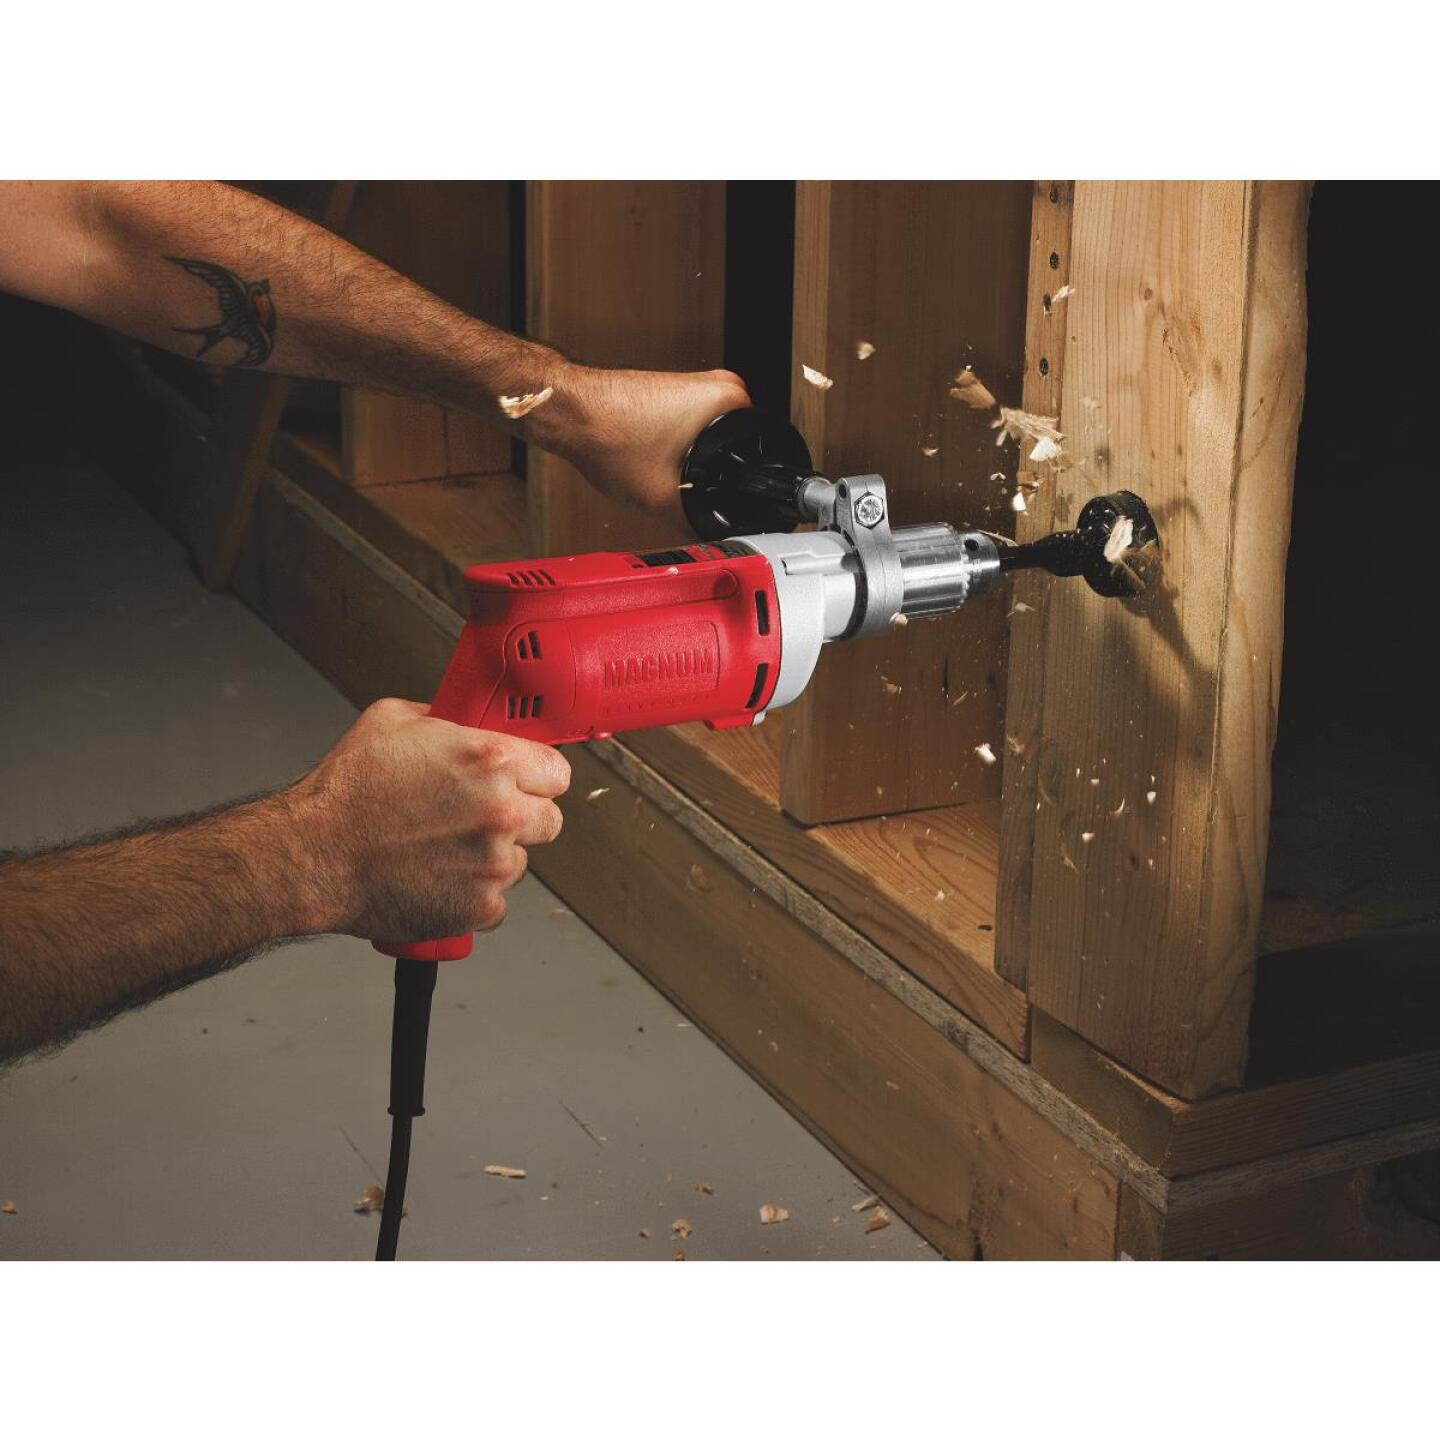 Milwaukee Magnum 1/2 In. 8-Amp Keyed Electric Drill with Textured Grip Image 2